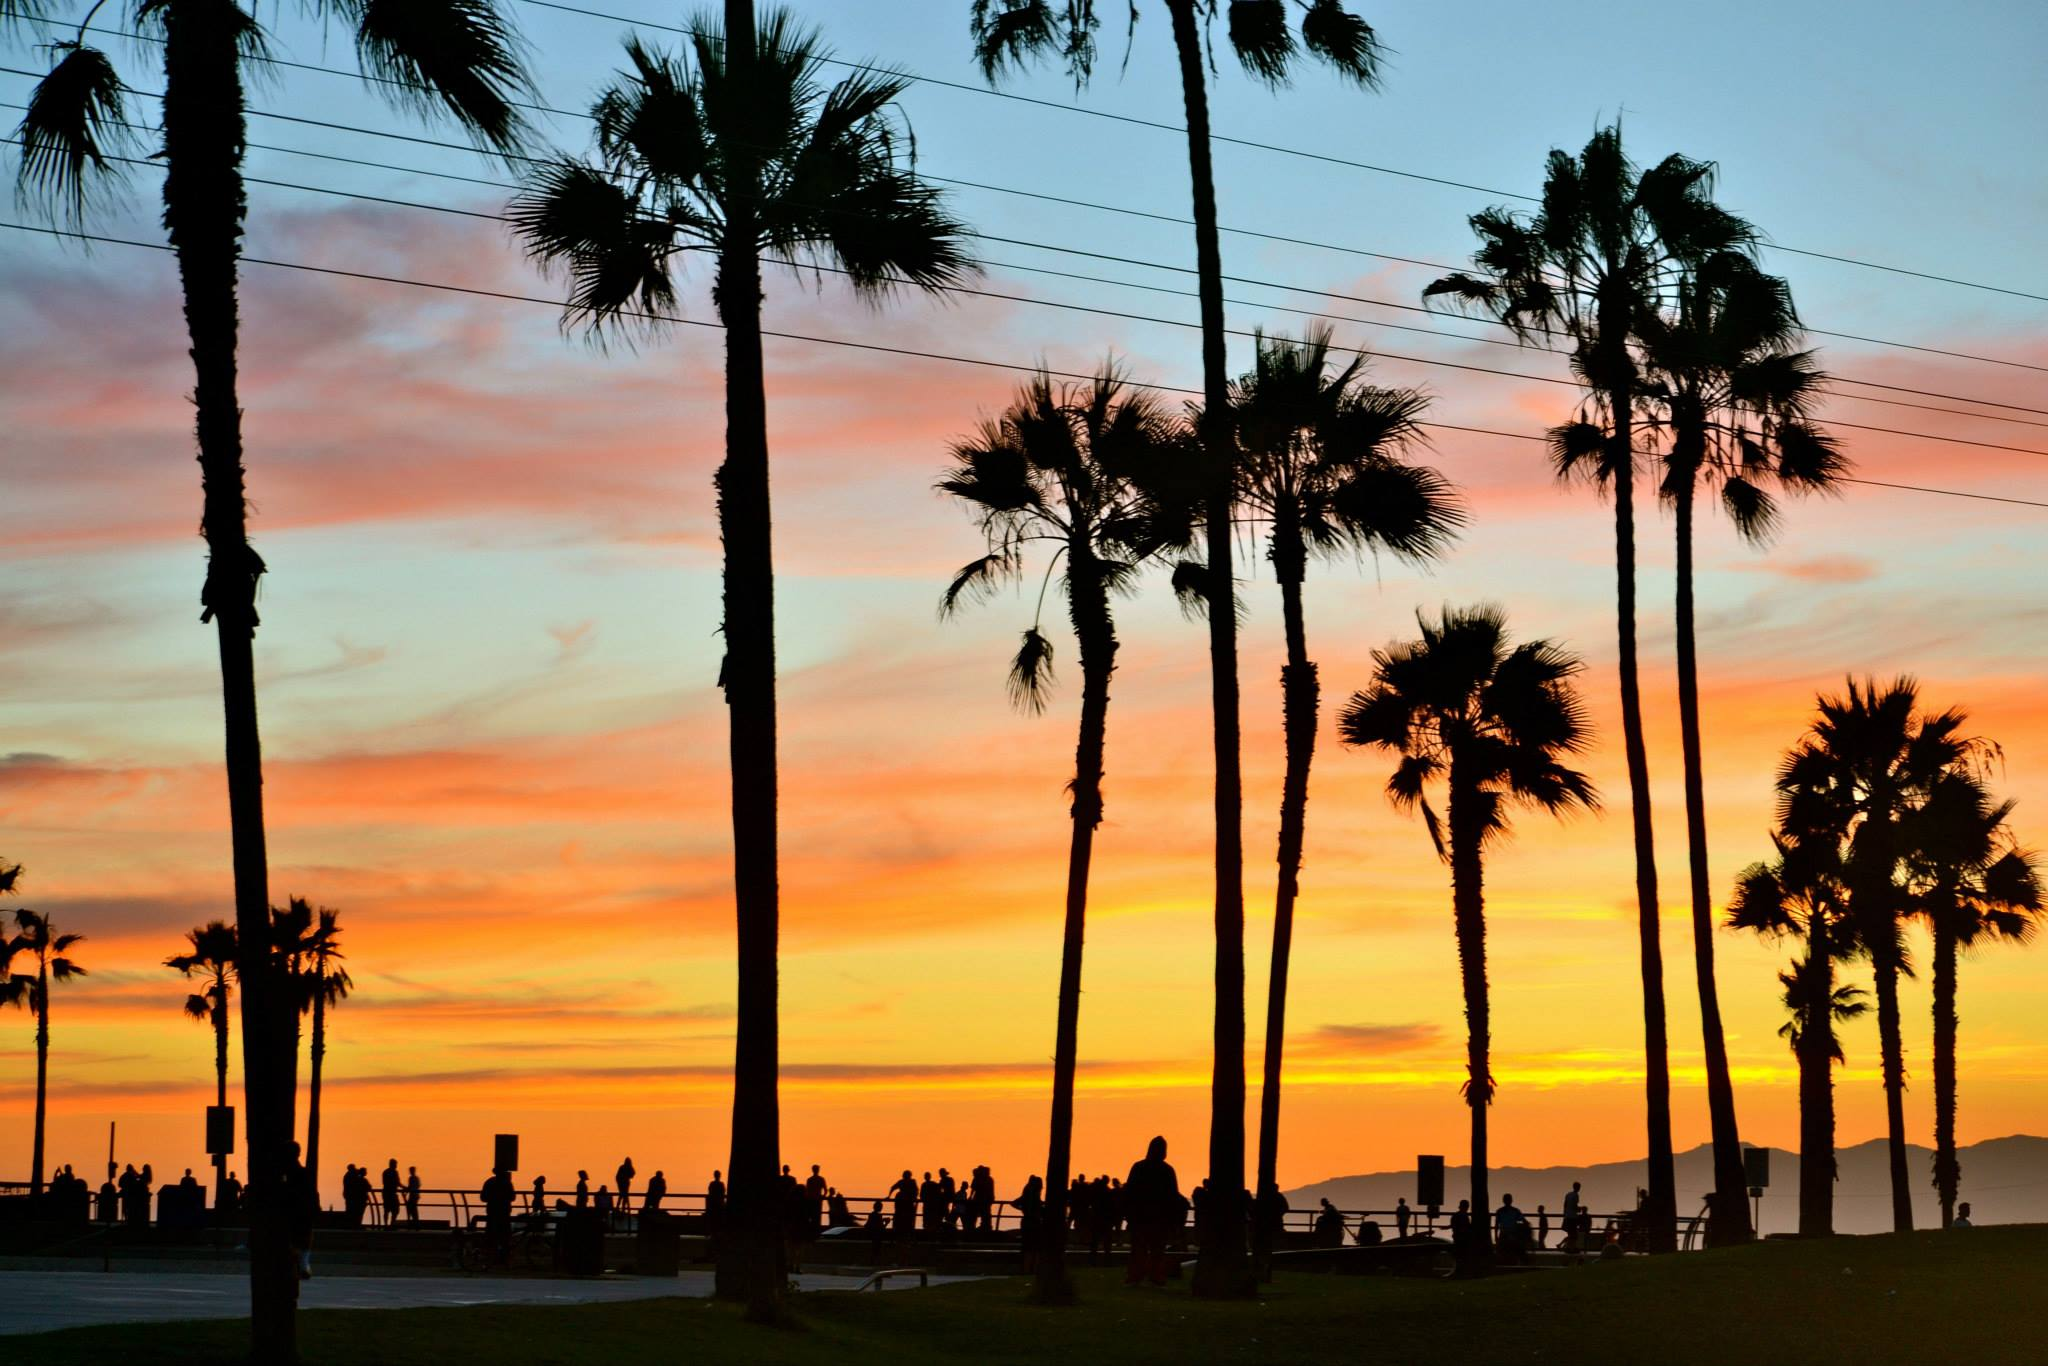 Venice-Admiral-Suites-Venice-Beach-Santa-Monica-Los-Angeles-sunset-at-the-beach